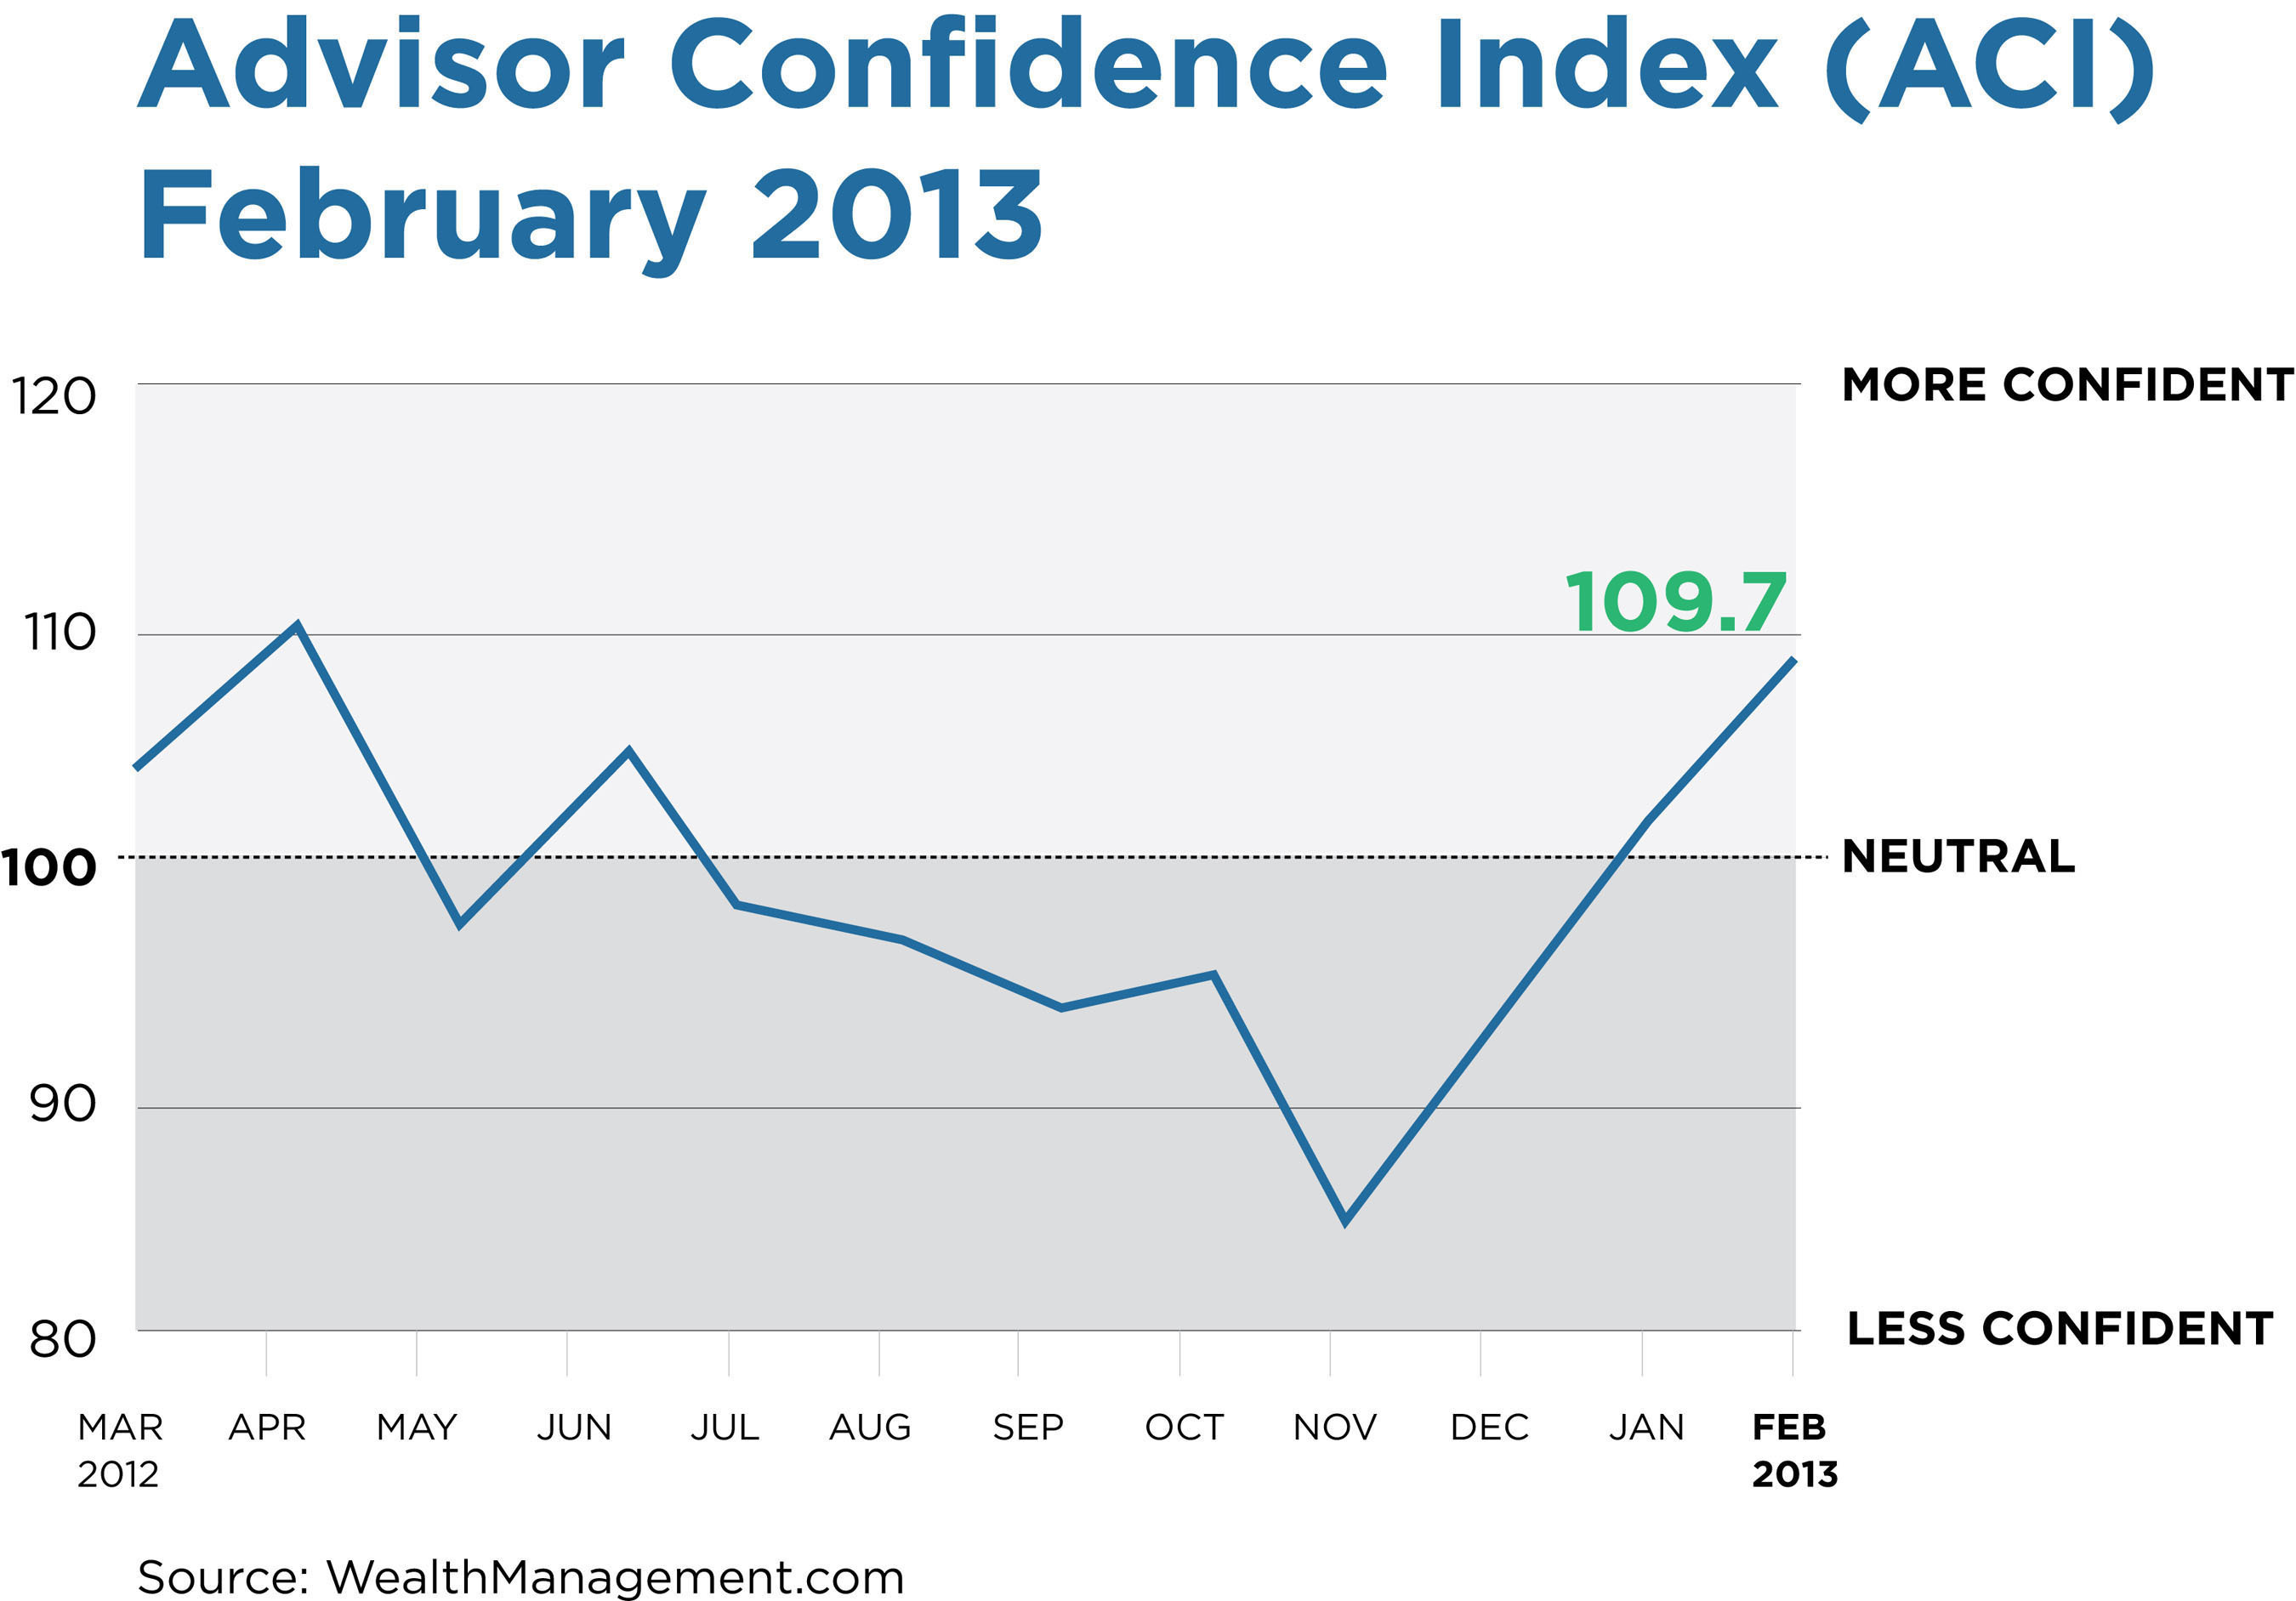 February 2013 Advisor Confidence Index from Penton's Wealthmanagement.com.  (PRNewsFoto/Penton)